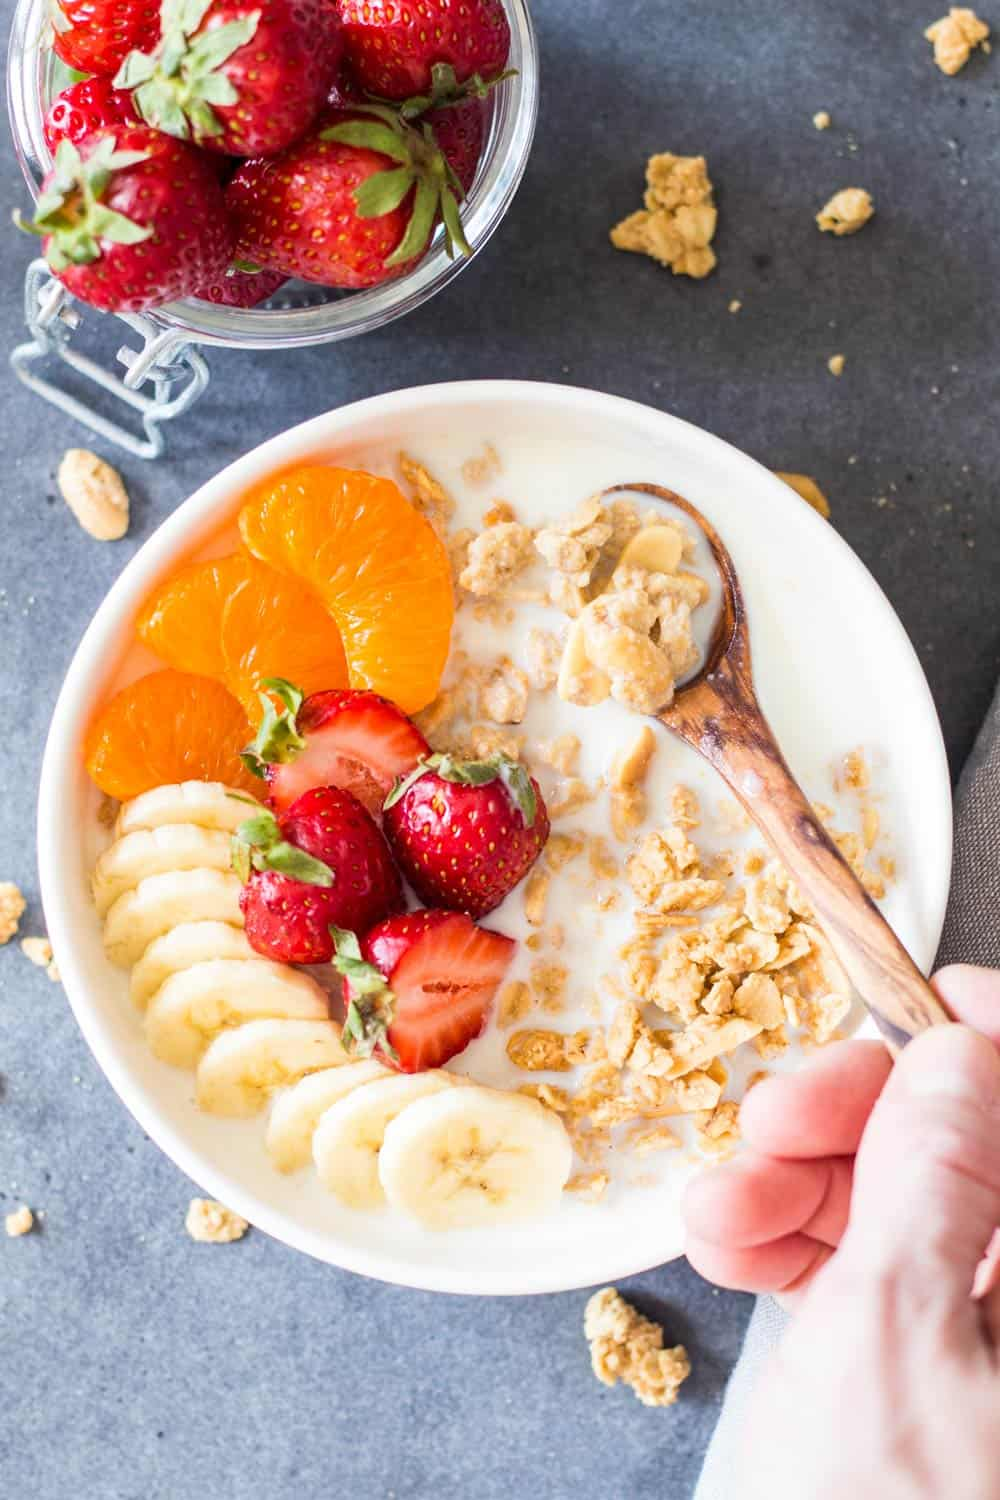 Peanut Butter Granola with fruit and milk